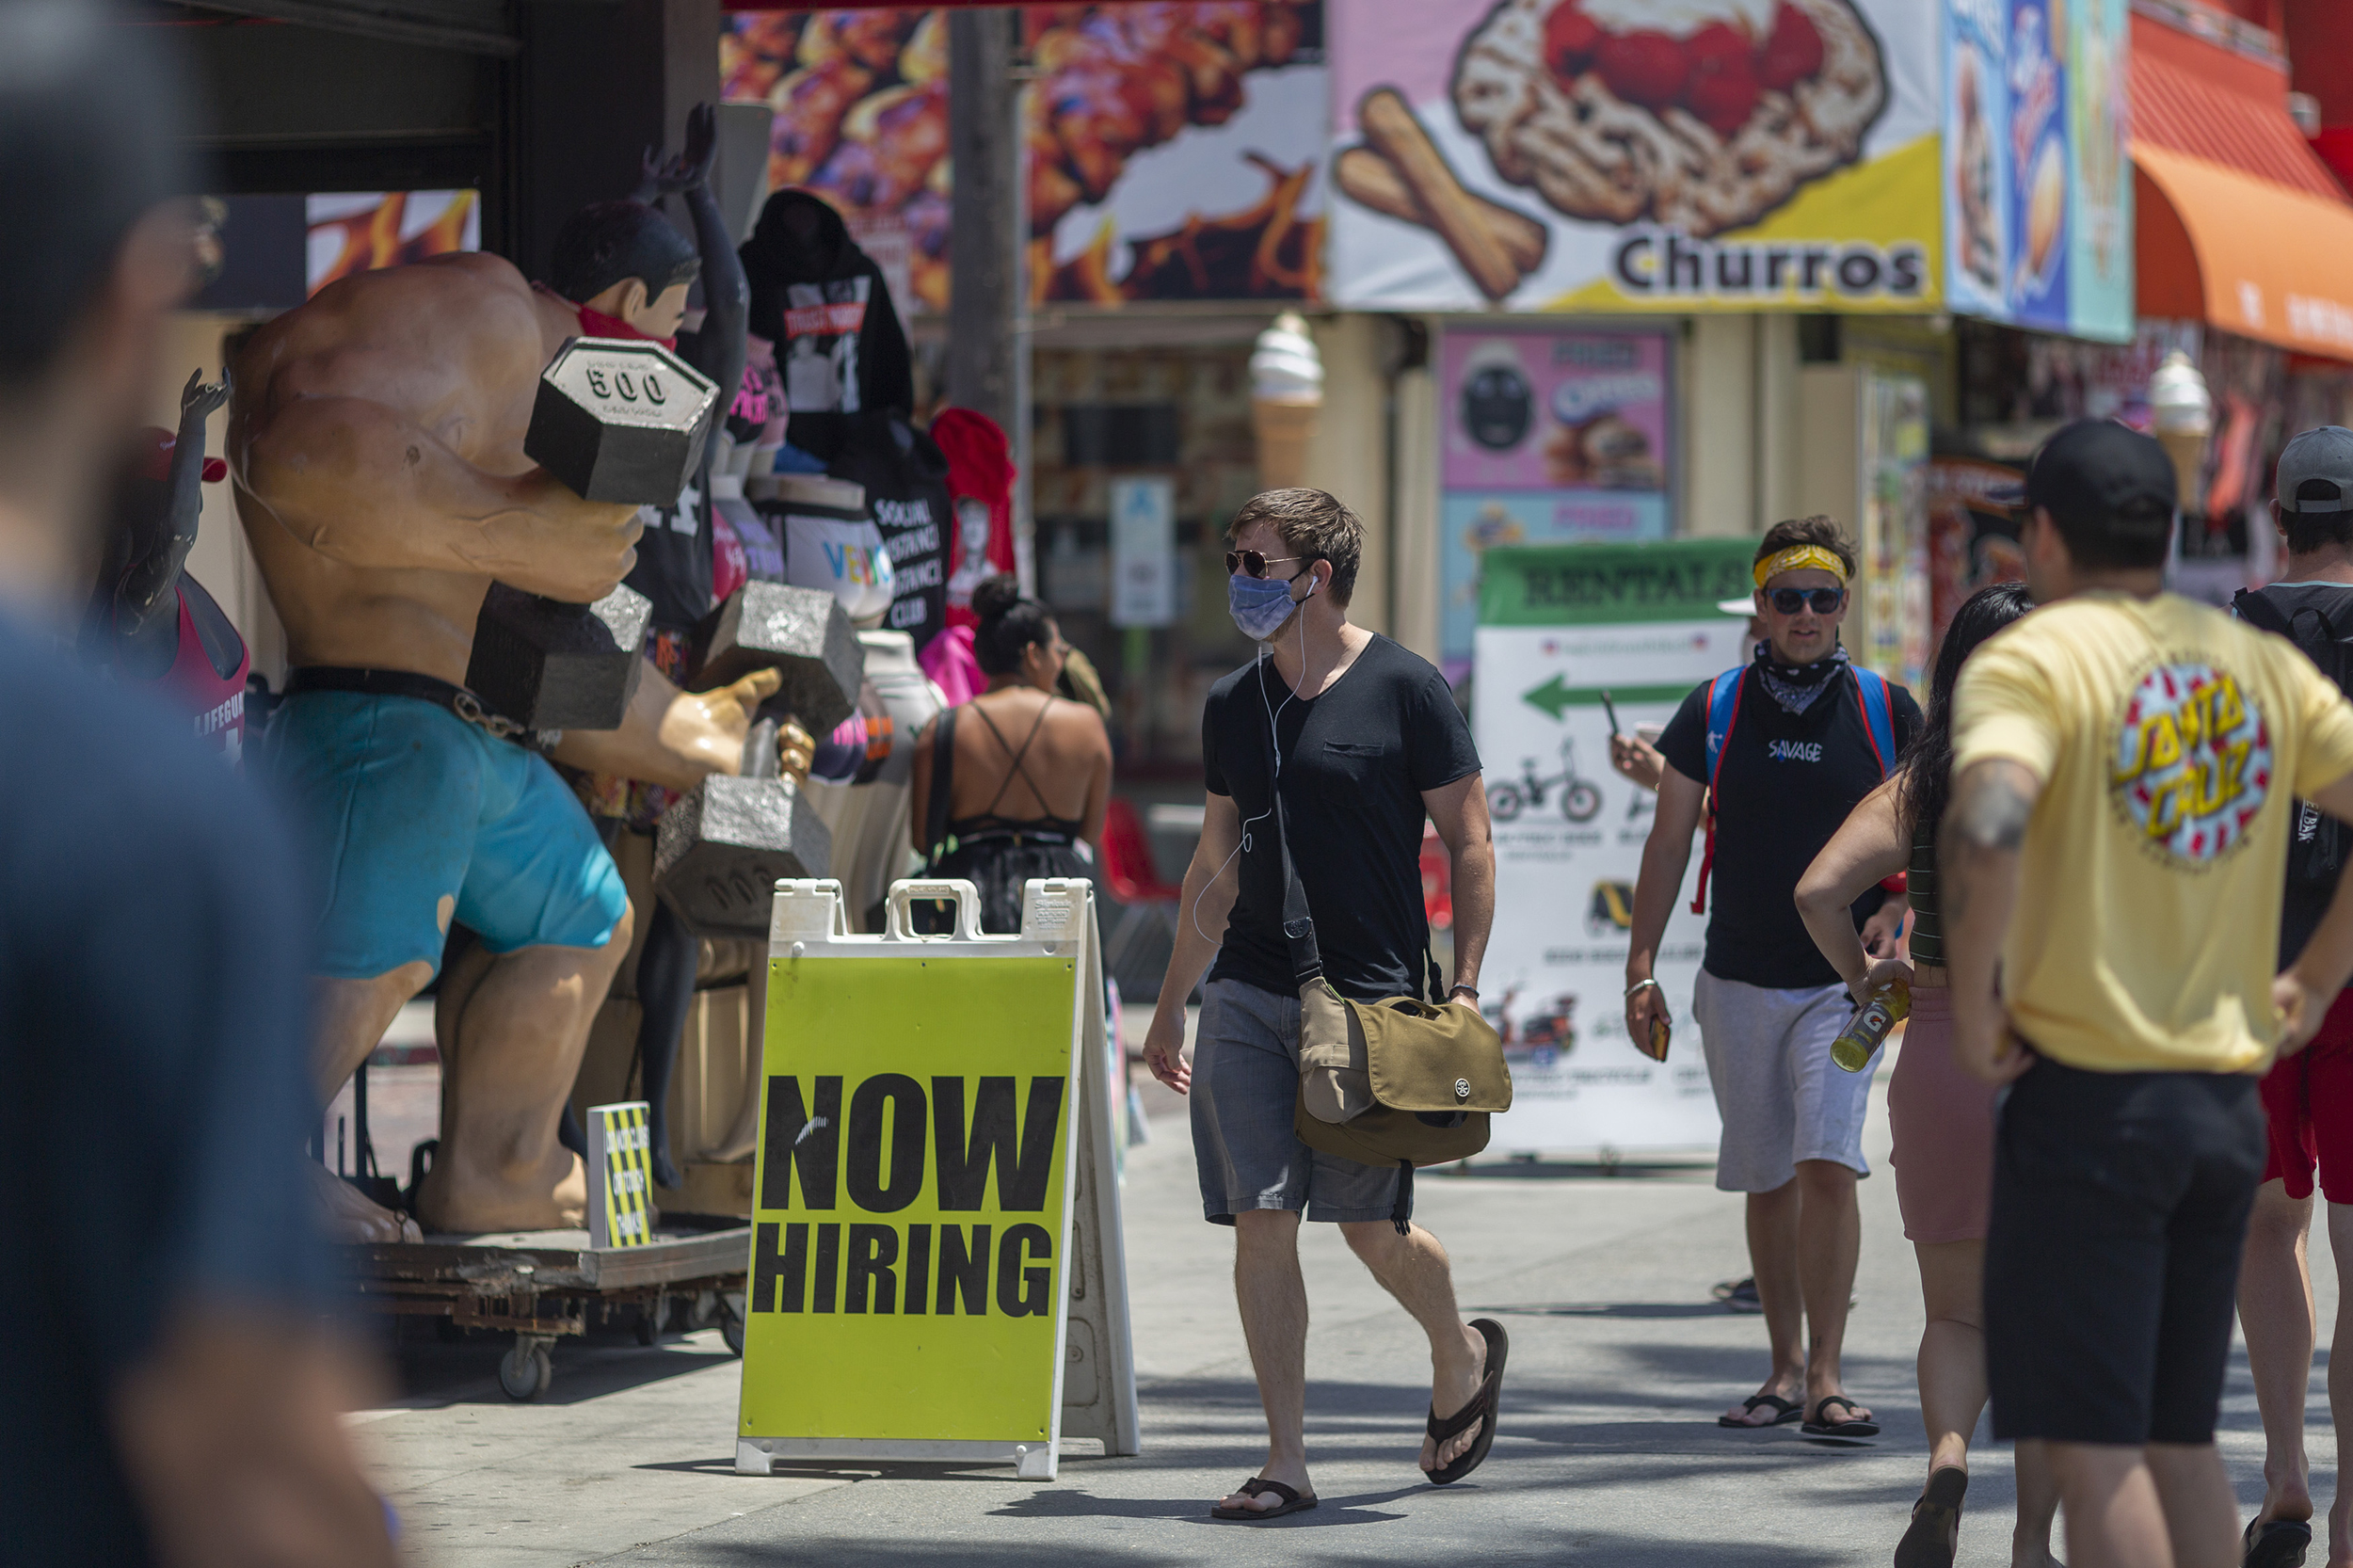 The U.S. now has more job openings than any time in history